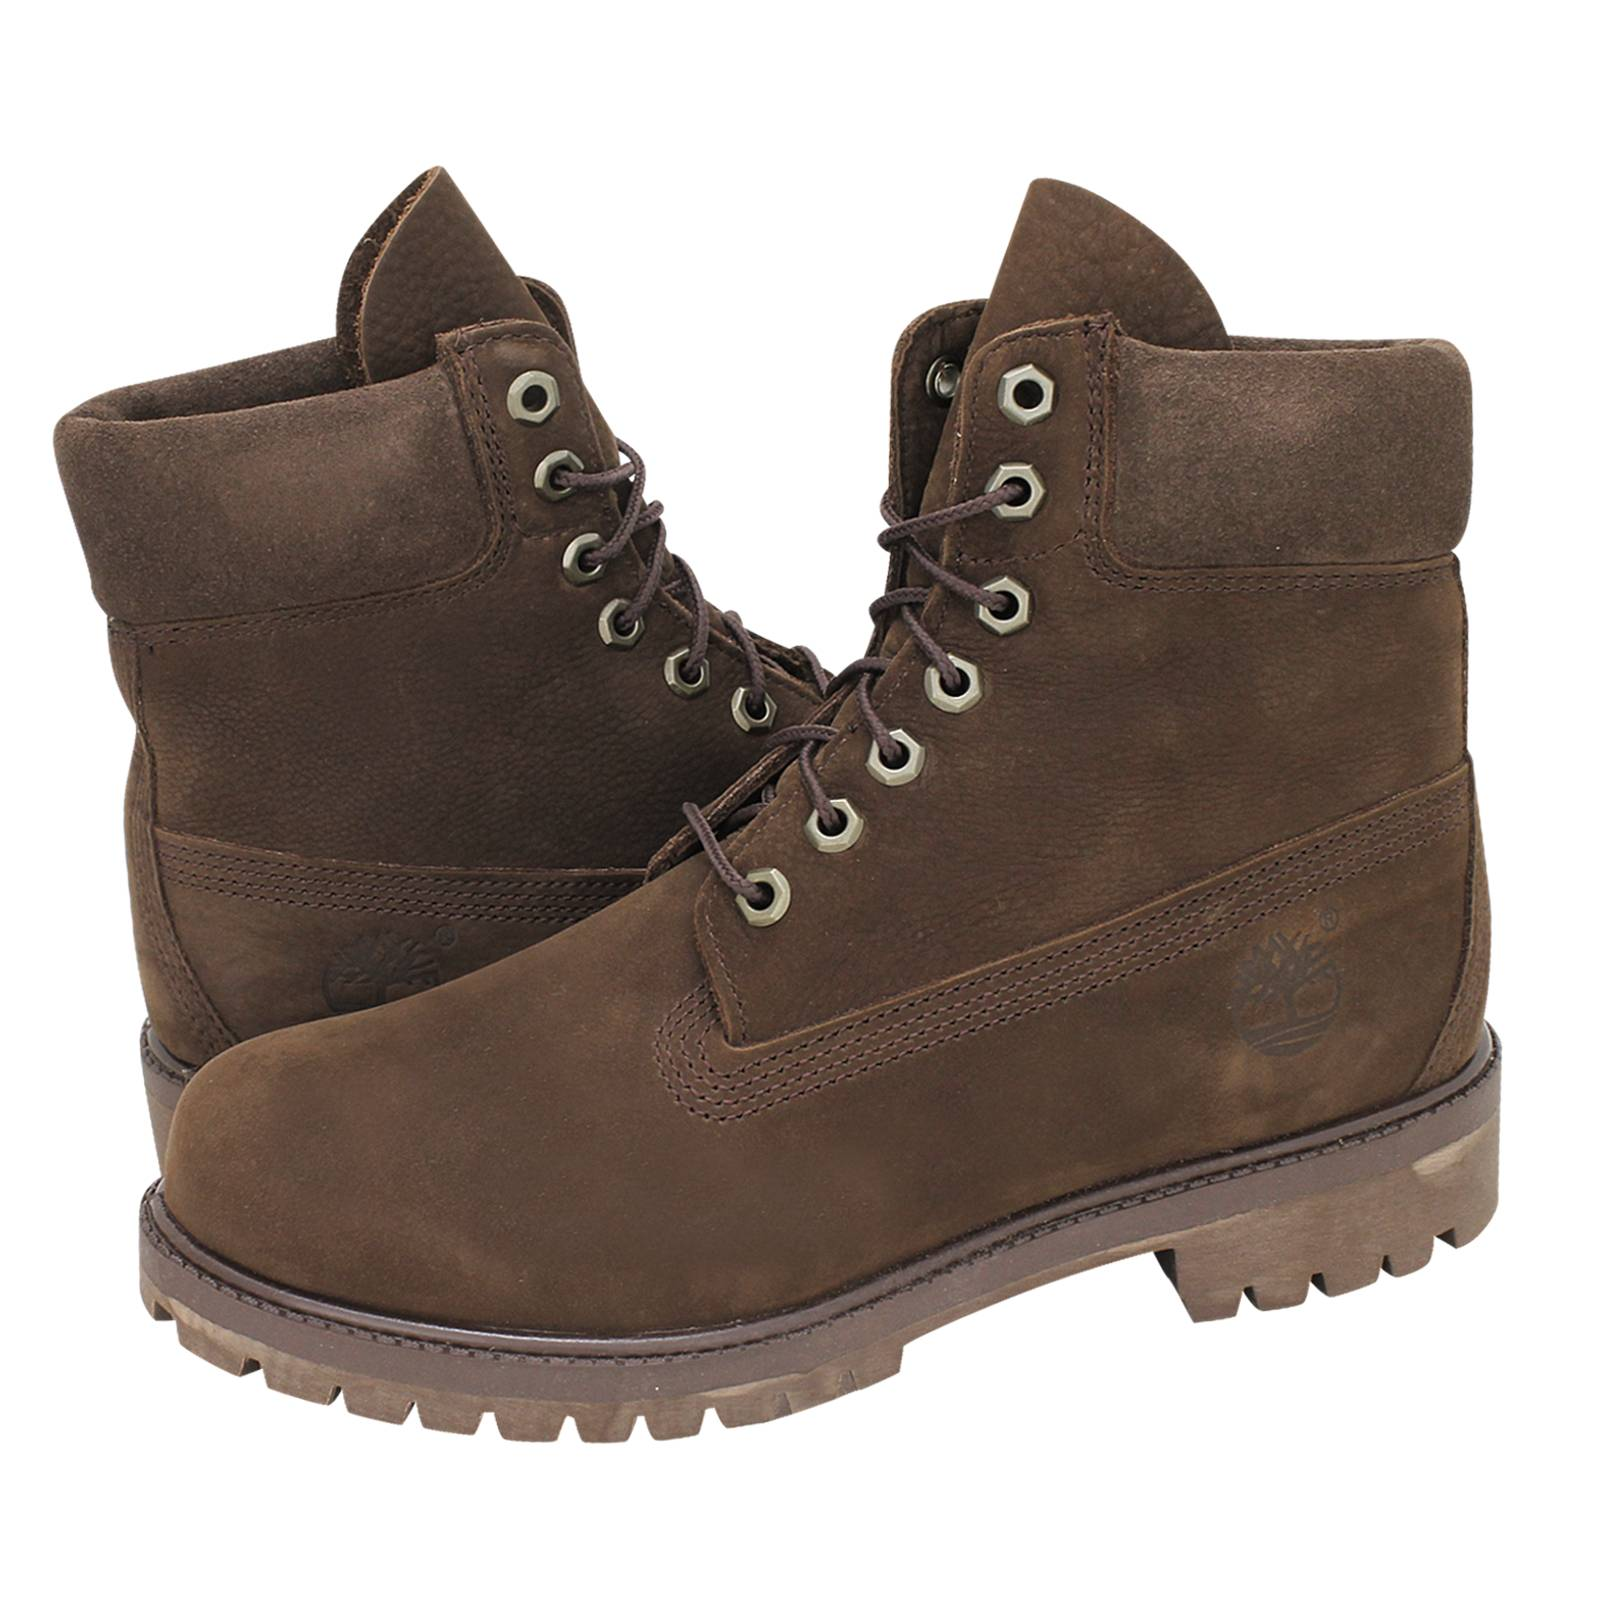 be8e9b763bb3 Icon 6 Premium Boot - Timberland Men s low boots made of nubuck and ...